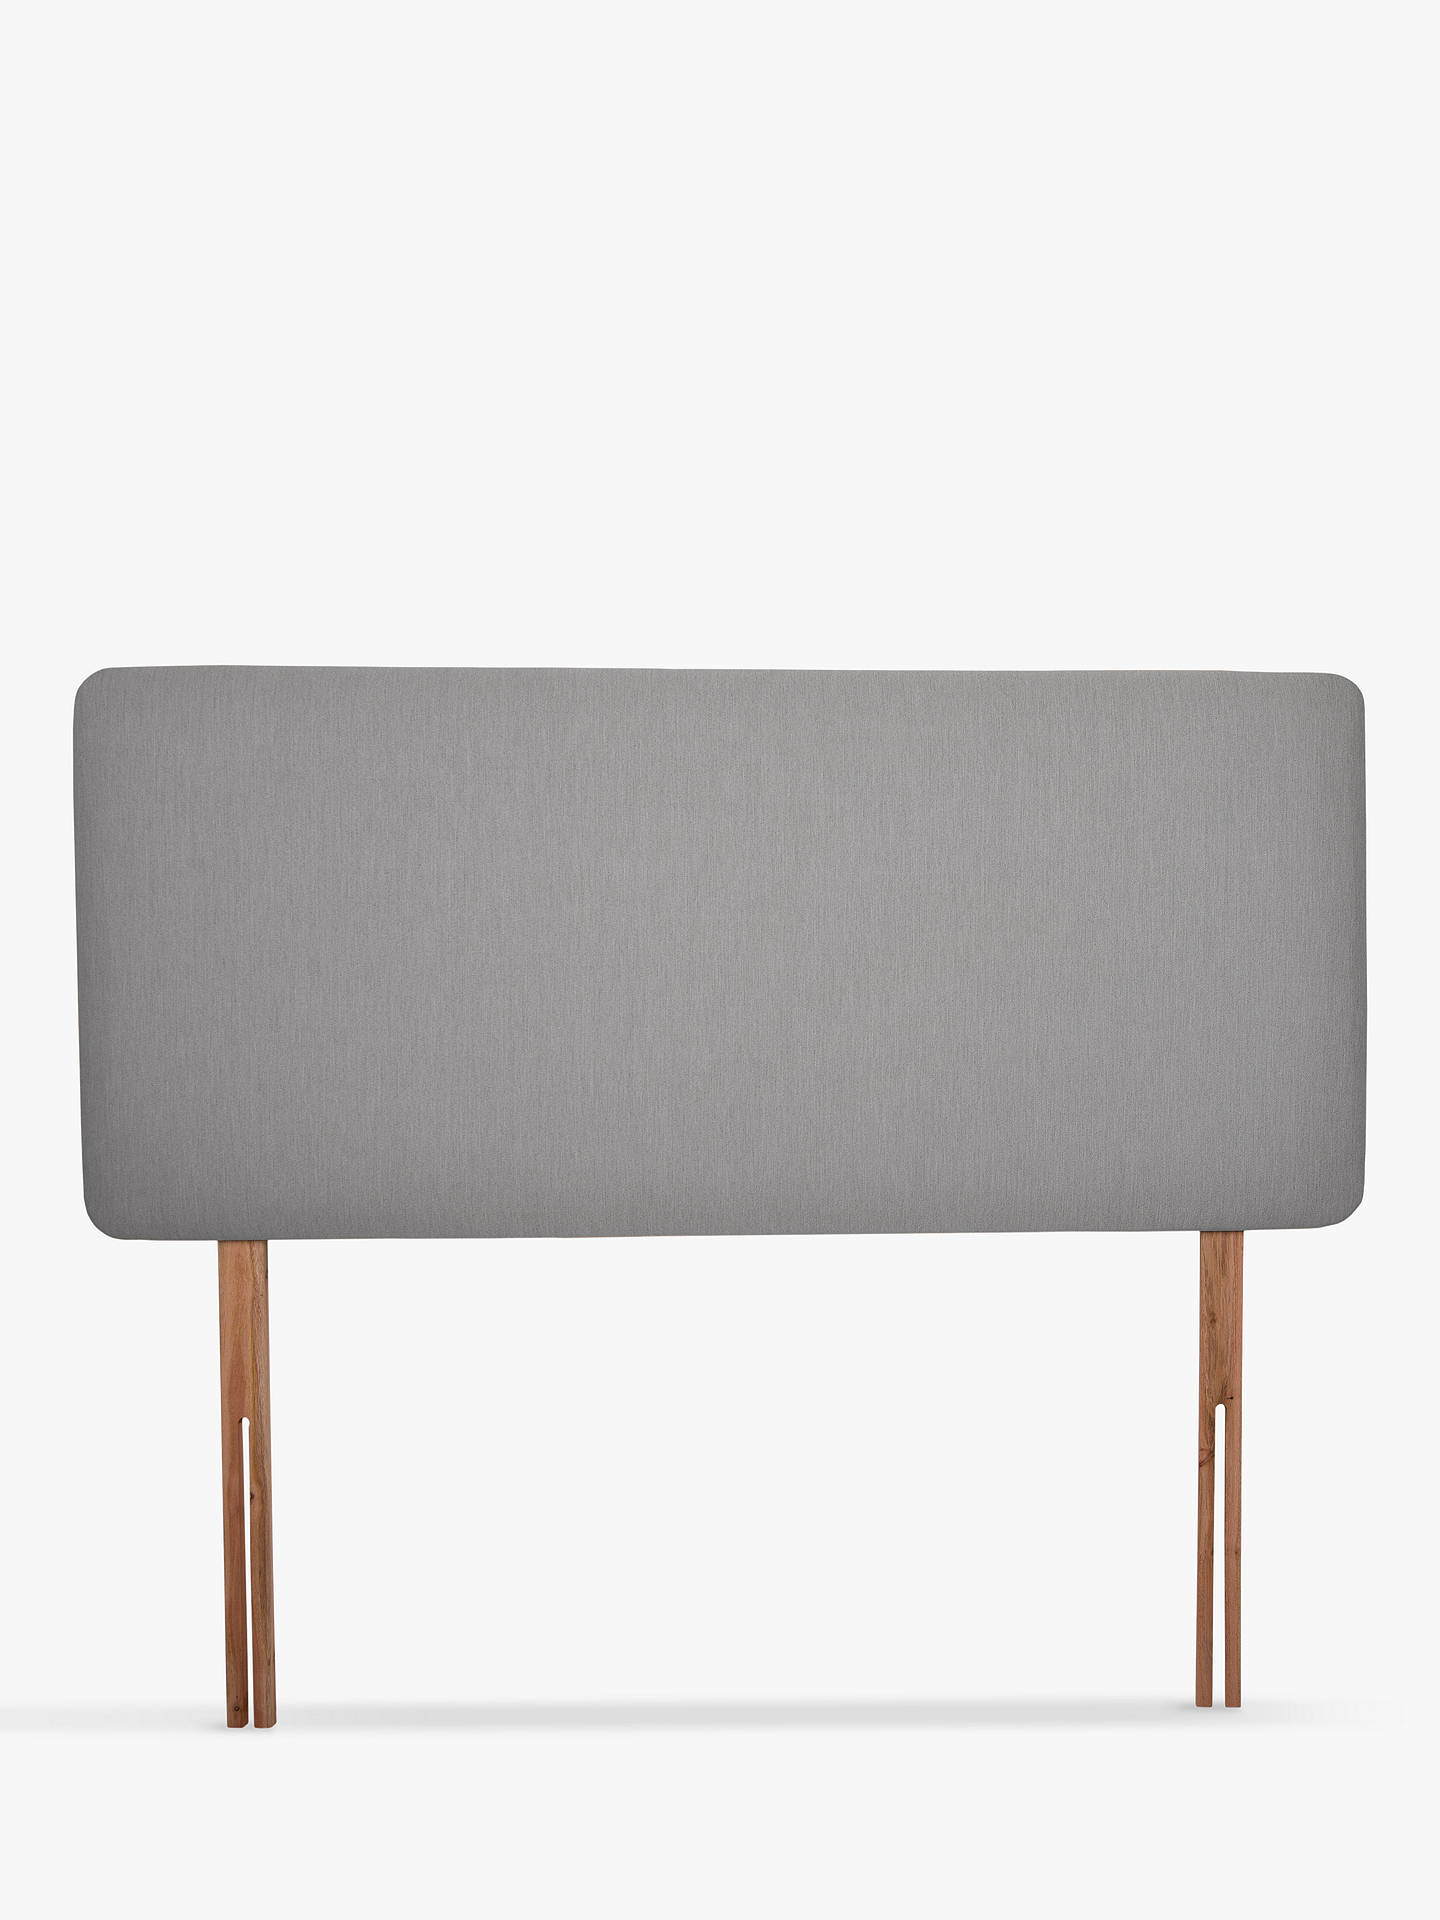 official photos 7bab4 10431 John Lewis & Partners Sonning Upholstered Headboard, King Size, Canvas  Steel Grey